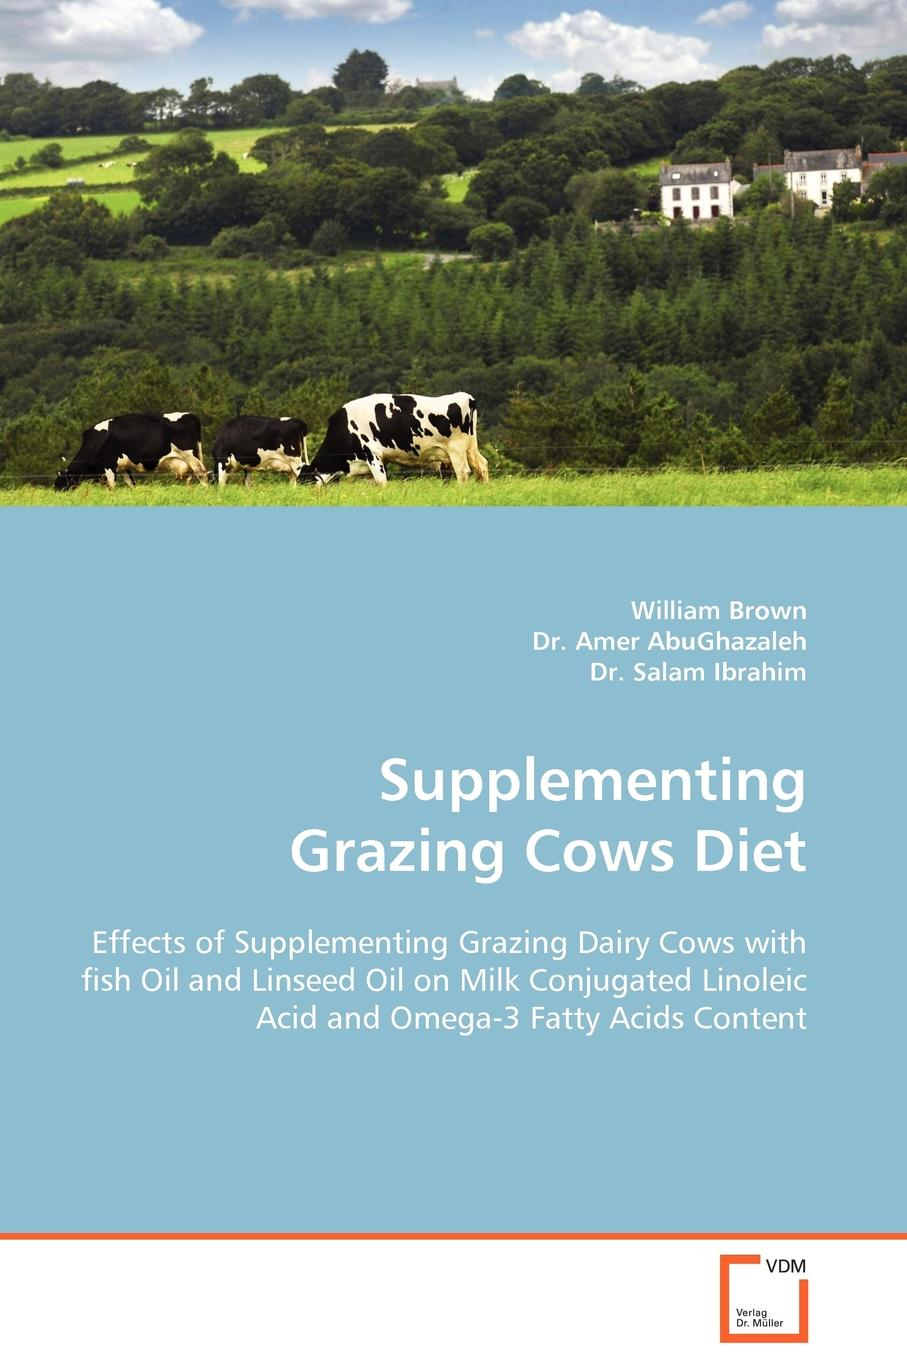 William Brown, Amer AbuGhazaleh, Salam Ibrahim Supplementing Grazing Cows Diet produce omega 3 fatty acids enriched eggs by using fish oil